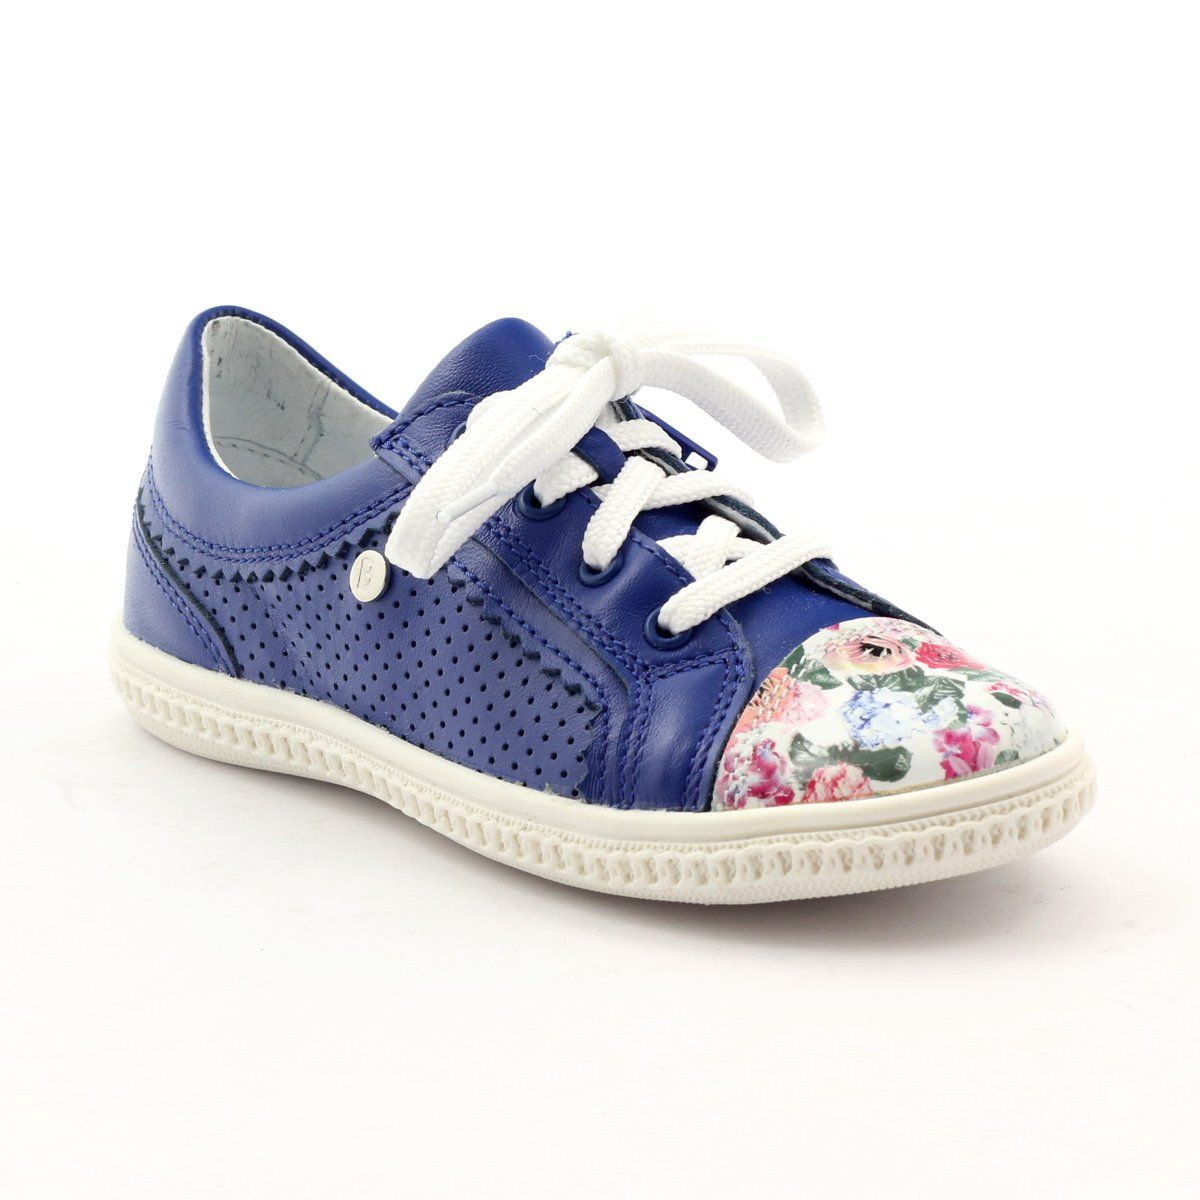 Girls Low Shoes Flowers Bartek 15524 White Violet Blue Pink Green Girls Shoes Childrens Shoes Kid Shoes